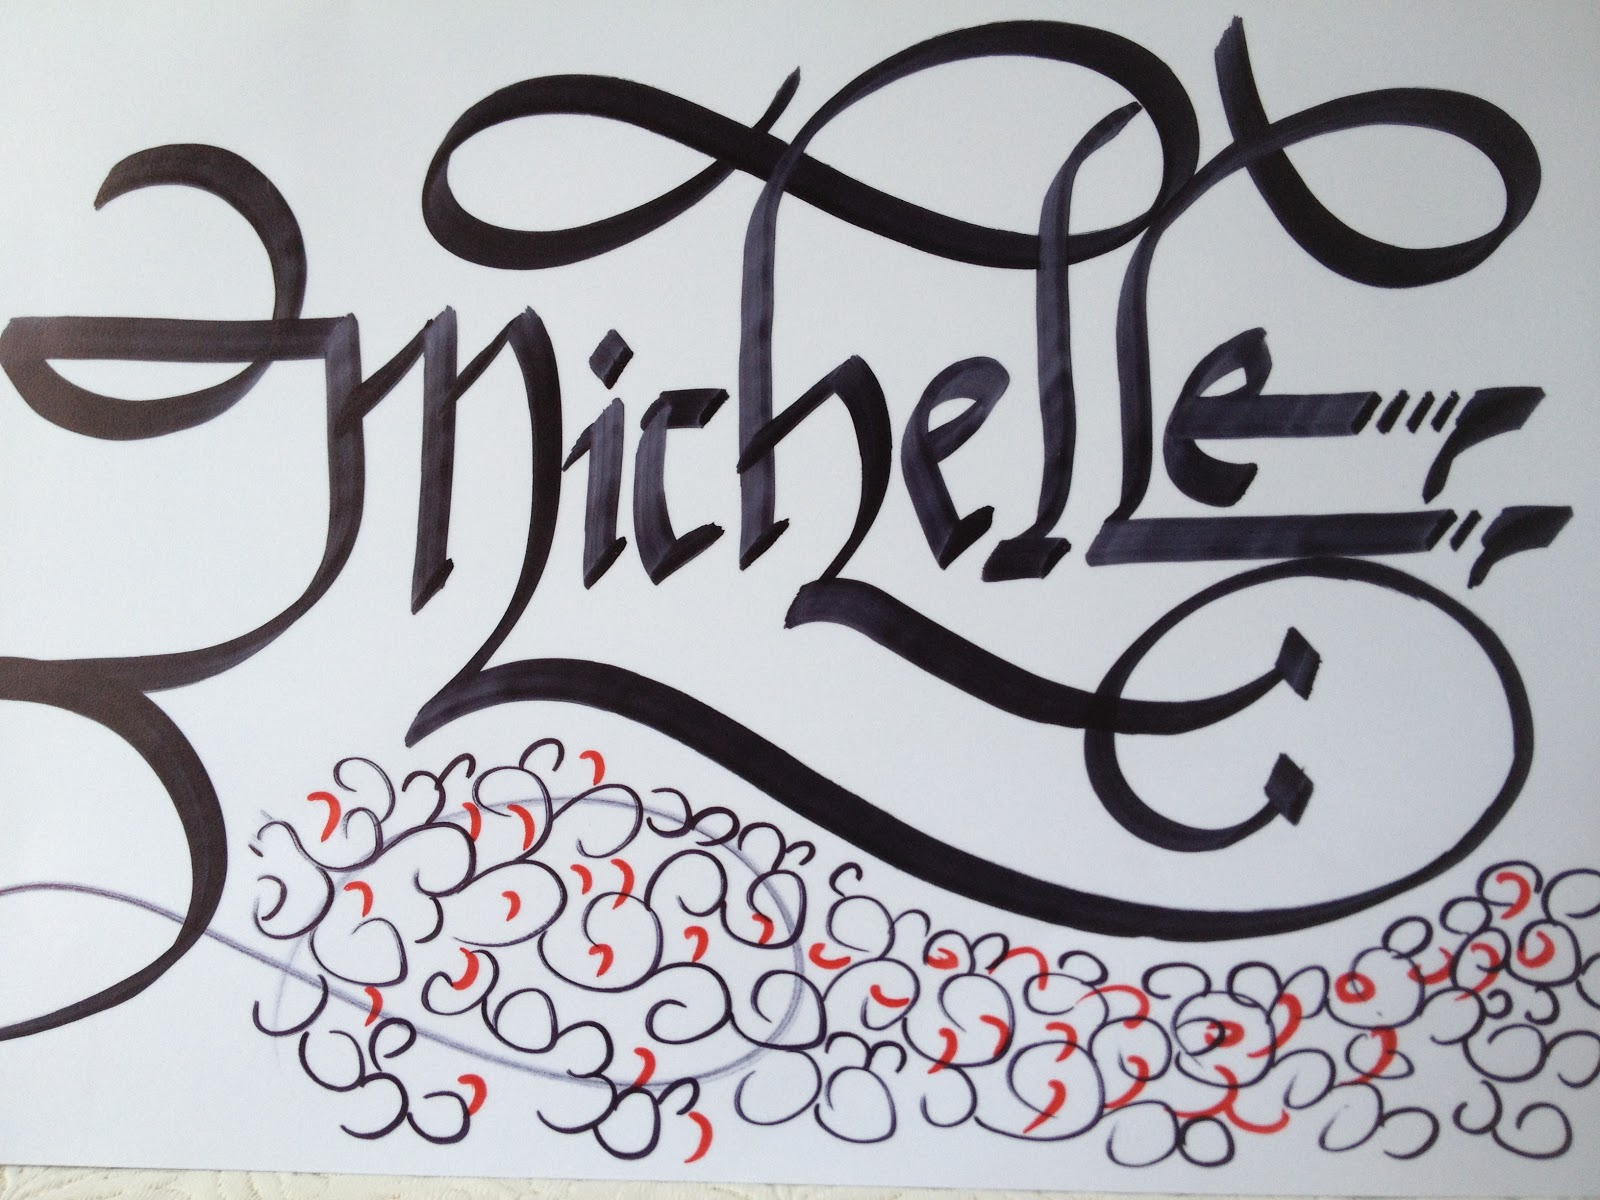 calligraphy art girl names in calligraphy 3 michelle sarah